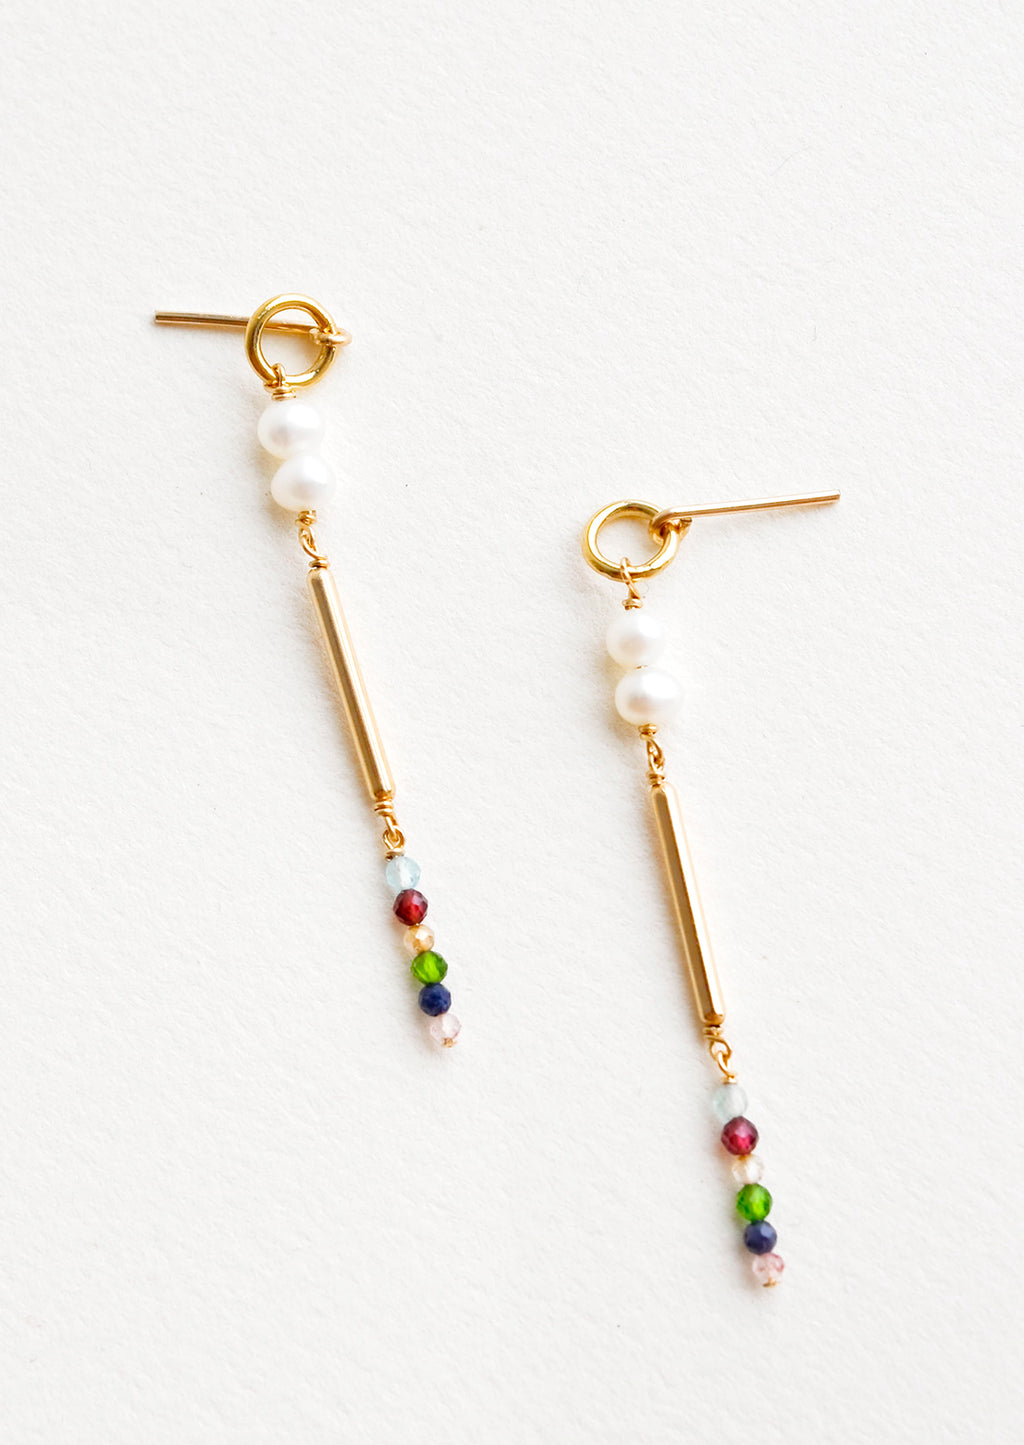 3: Dangling earrings featuring a small circle, two pearl beads, a gold post and six small multicolor gemstones on a yellow gold post back.